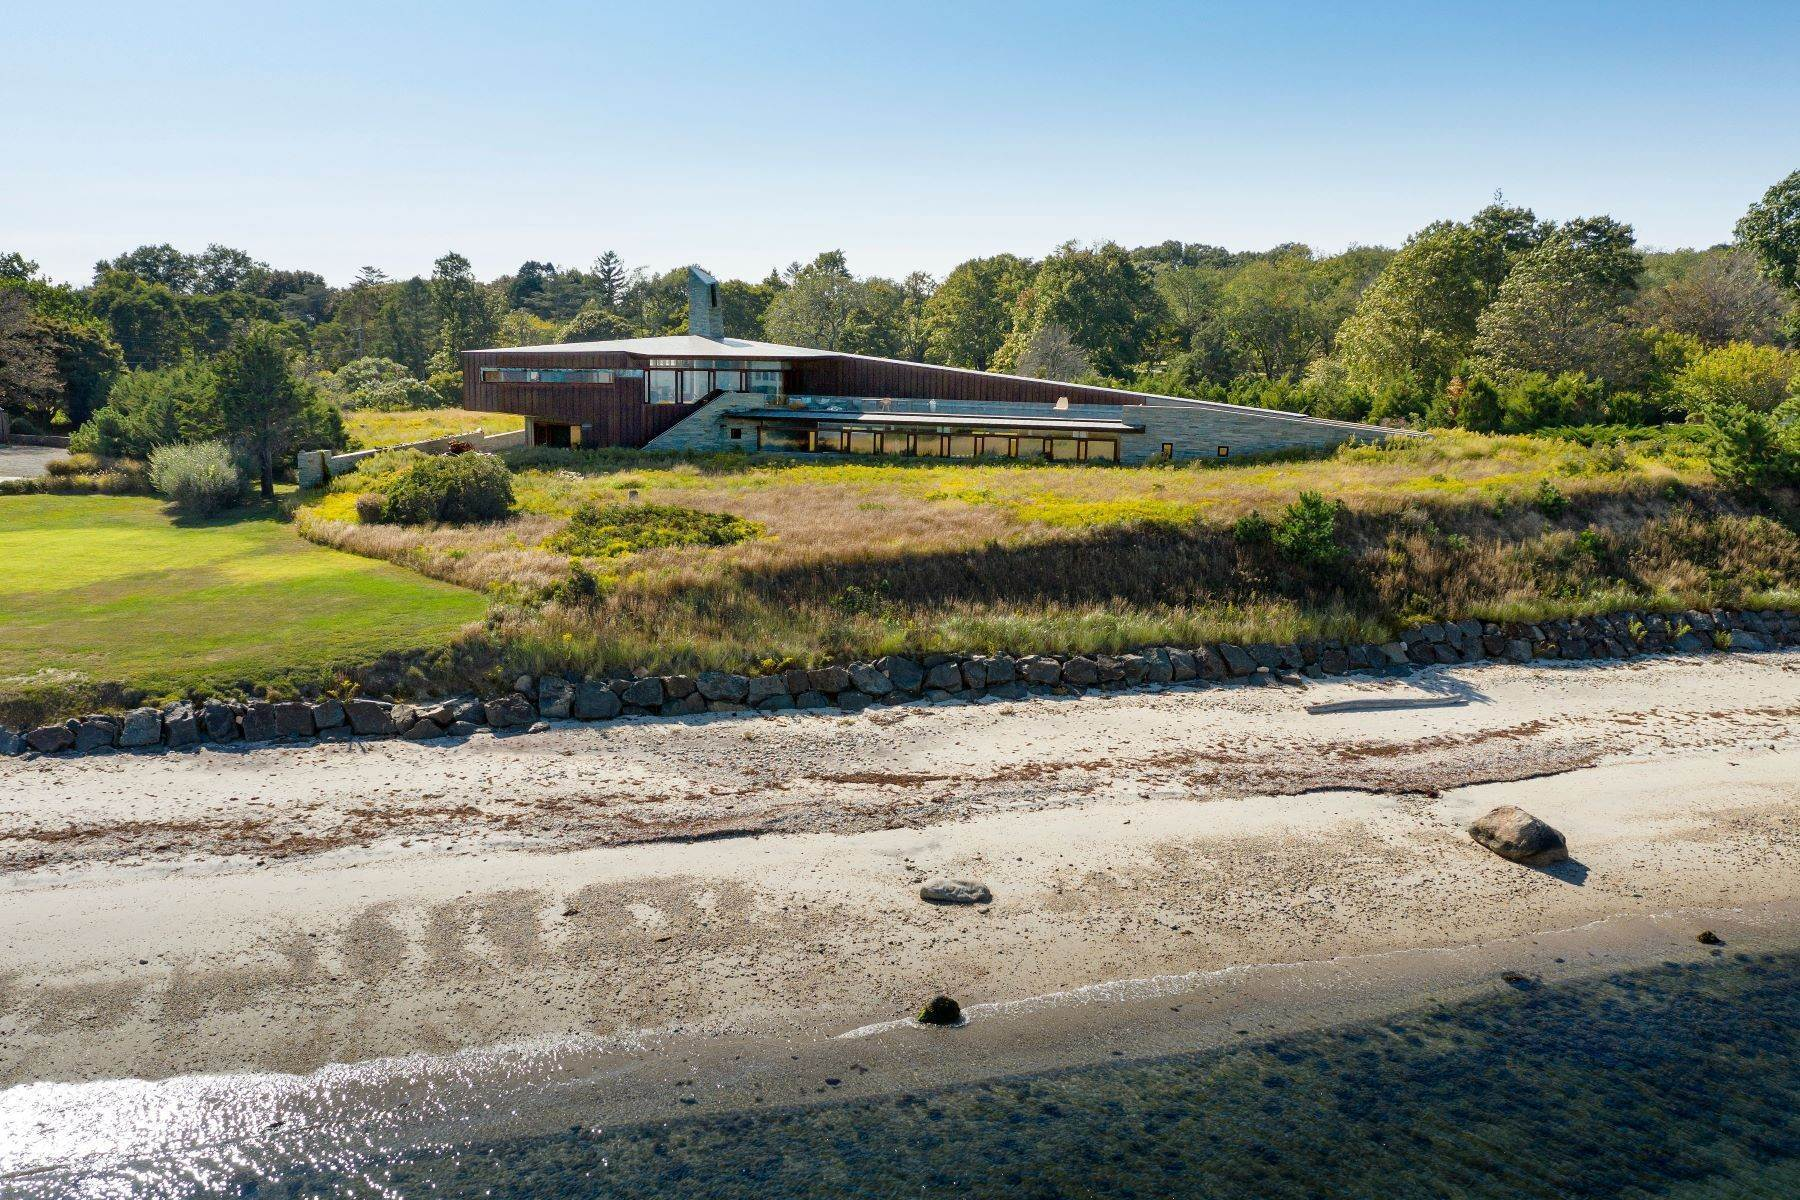 Single Family Homes for Sale at Shelter Island Waterfront Masterpiece 91 Ram Island Drive Shelter Island, New York 11965 United States